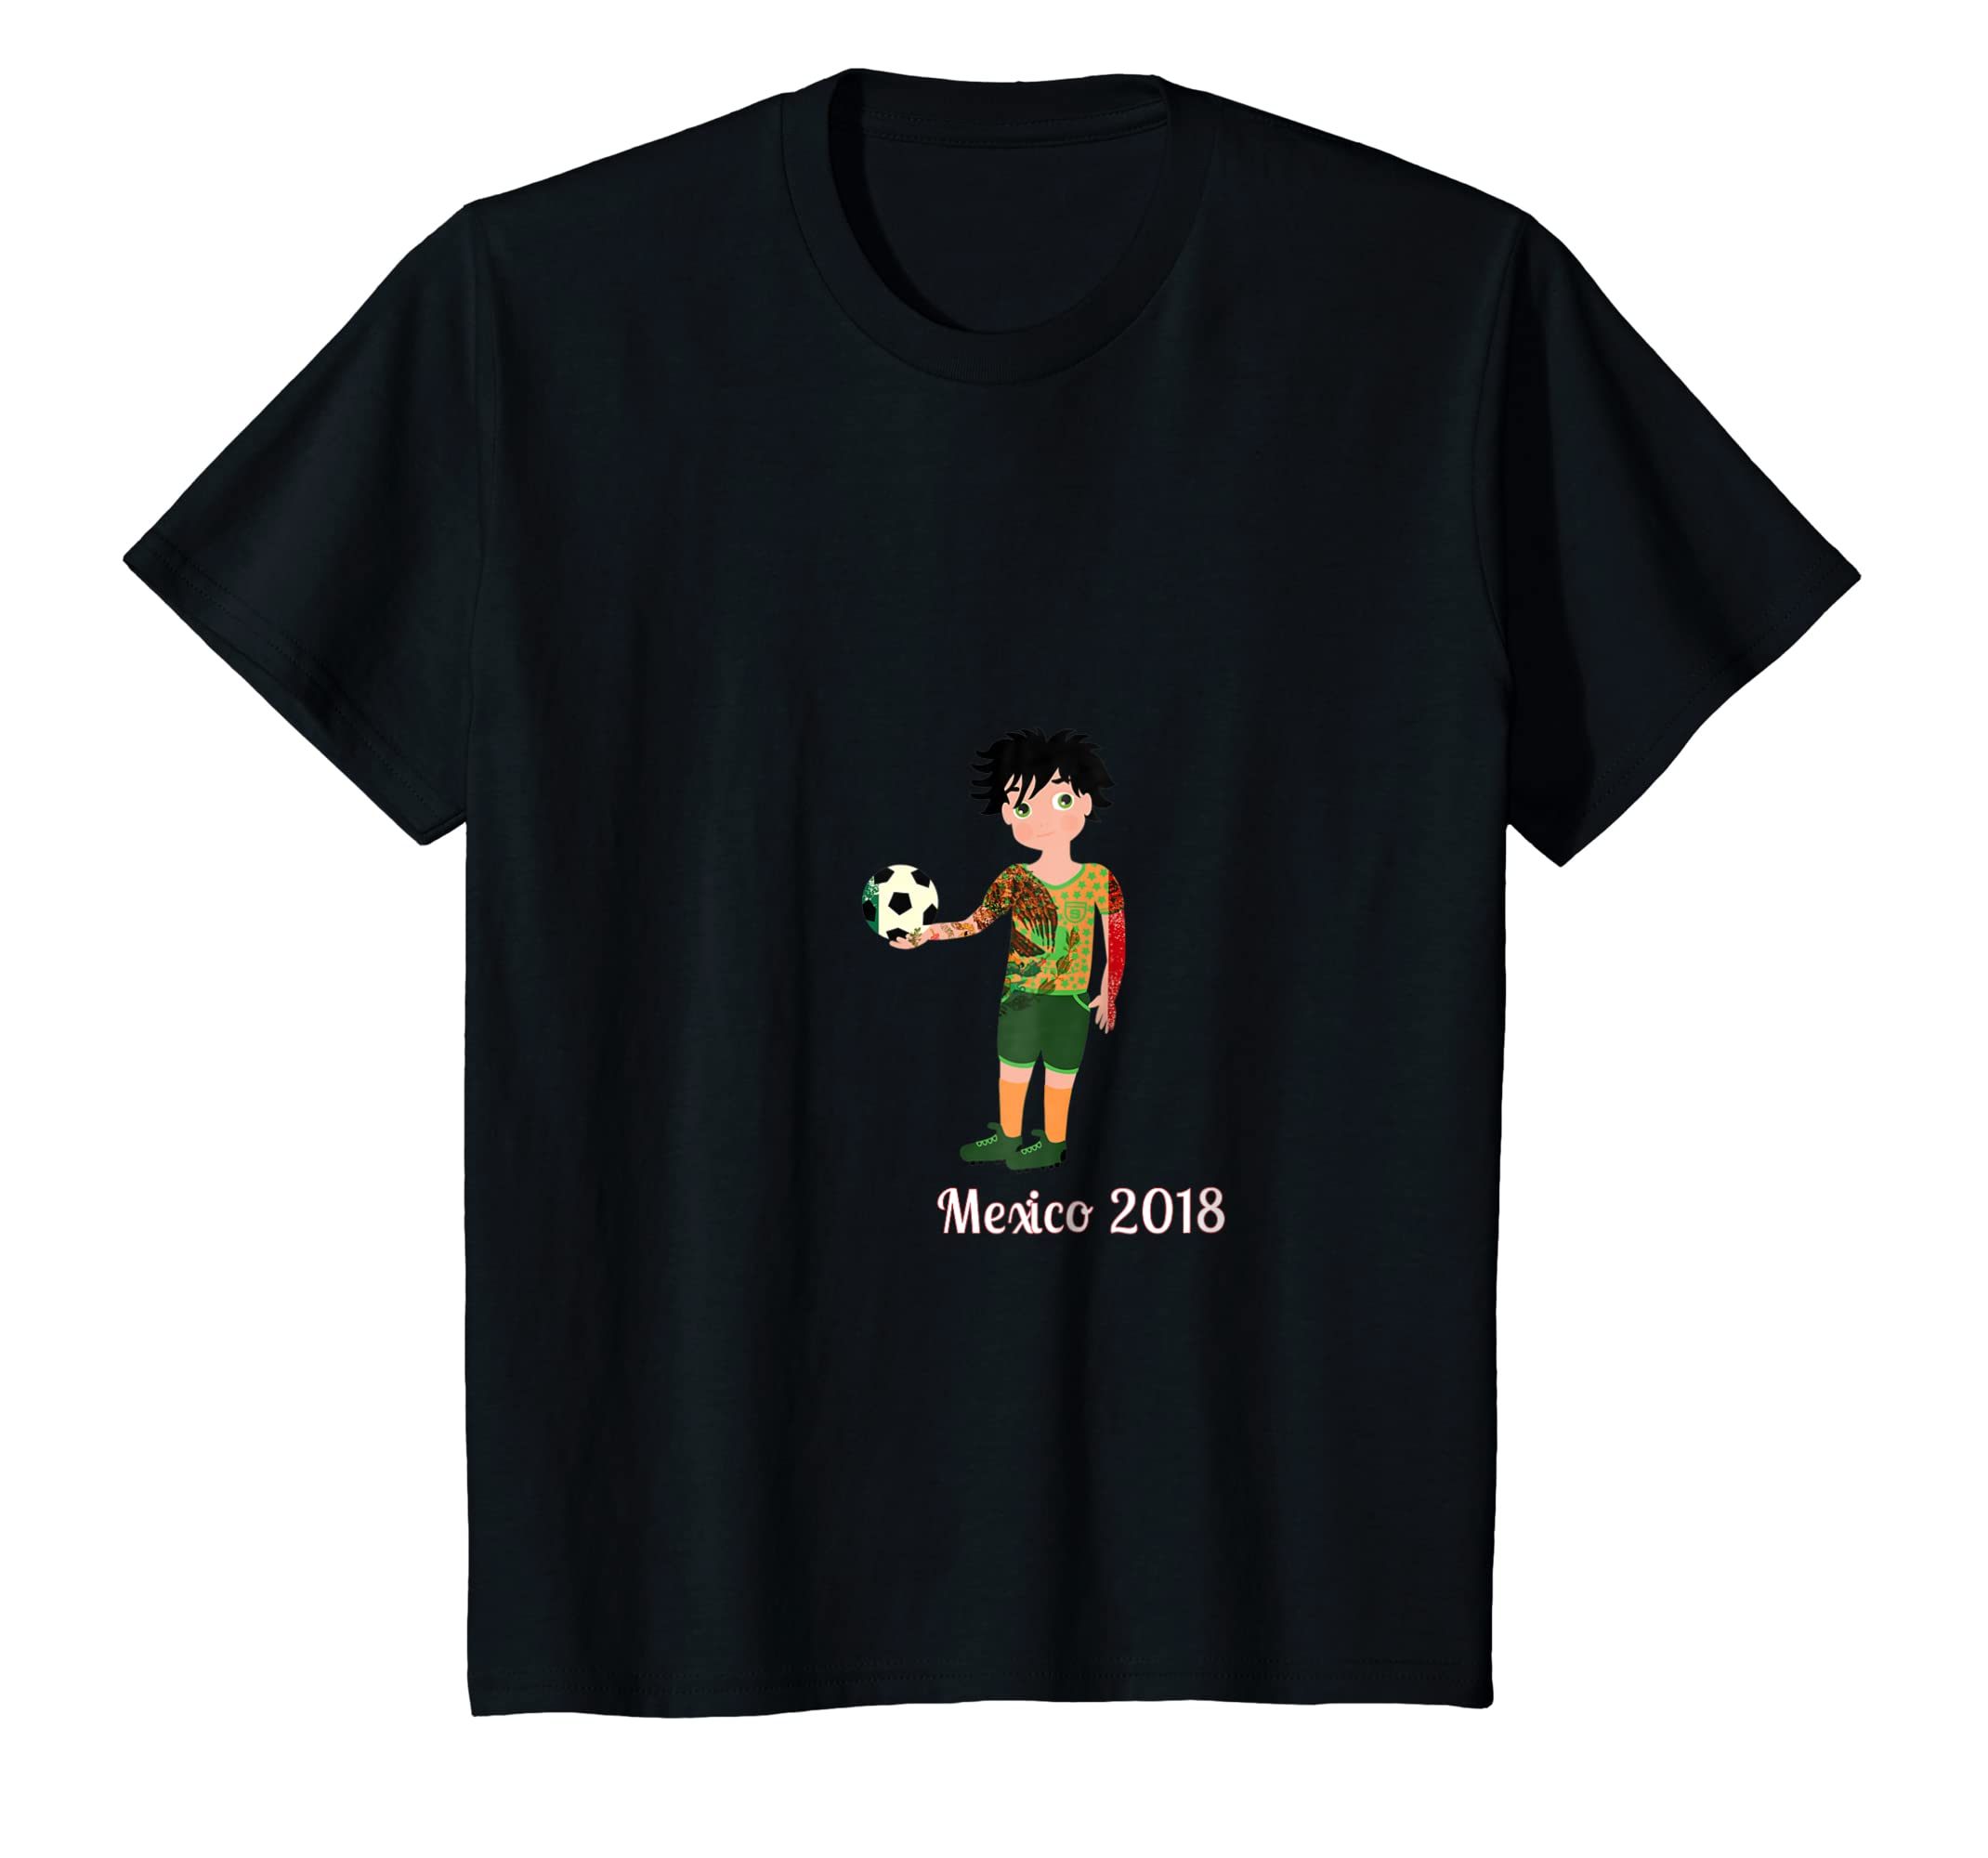 Amazon.com: Mexico Soccer Jersey Shirt Mexican Flag Colors 2018: Clothing